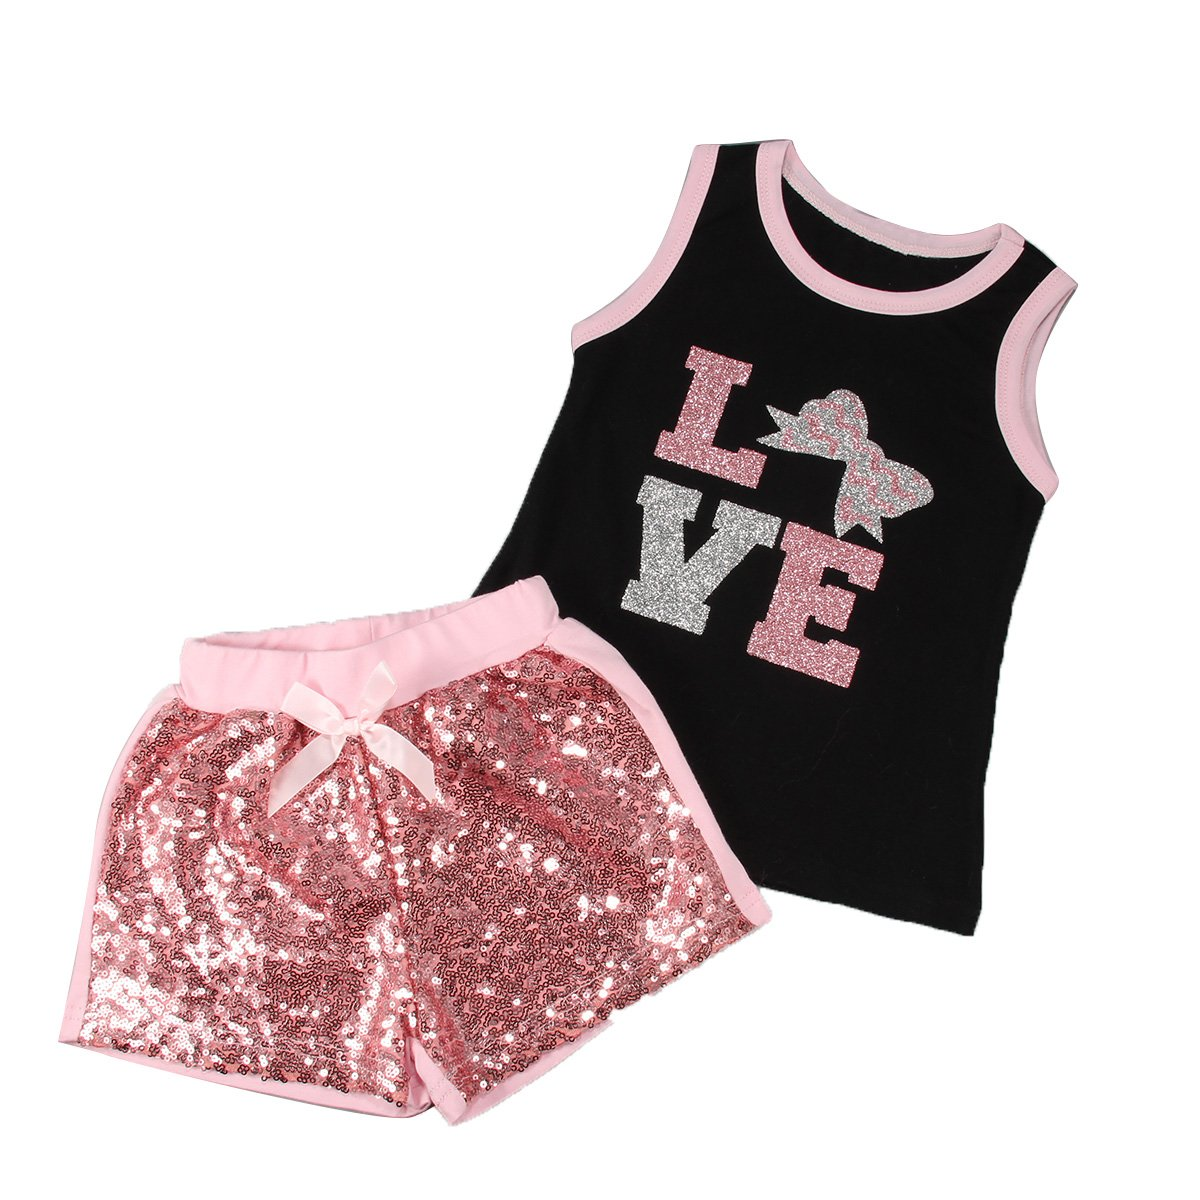 Puseky Toddler Kids Baby Girl Blinking T-shirt Tops+Sequin Shorts Outfit Clothes (5~6 Year)